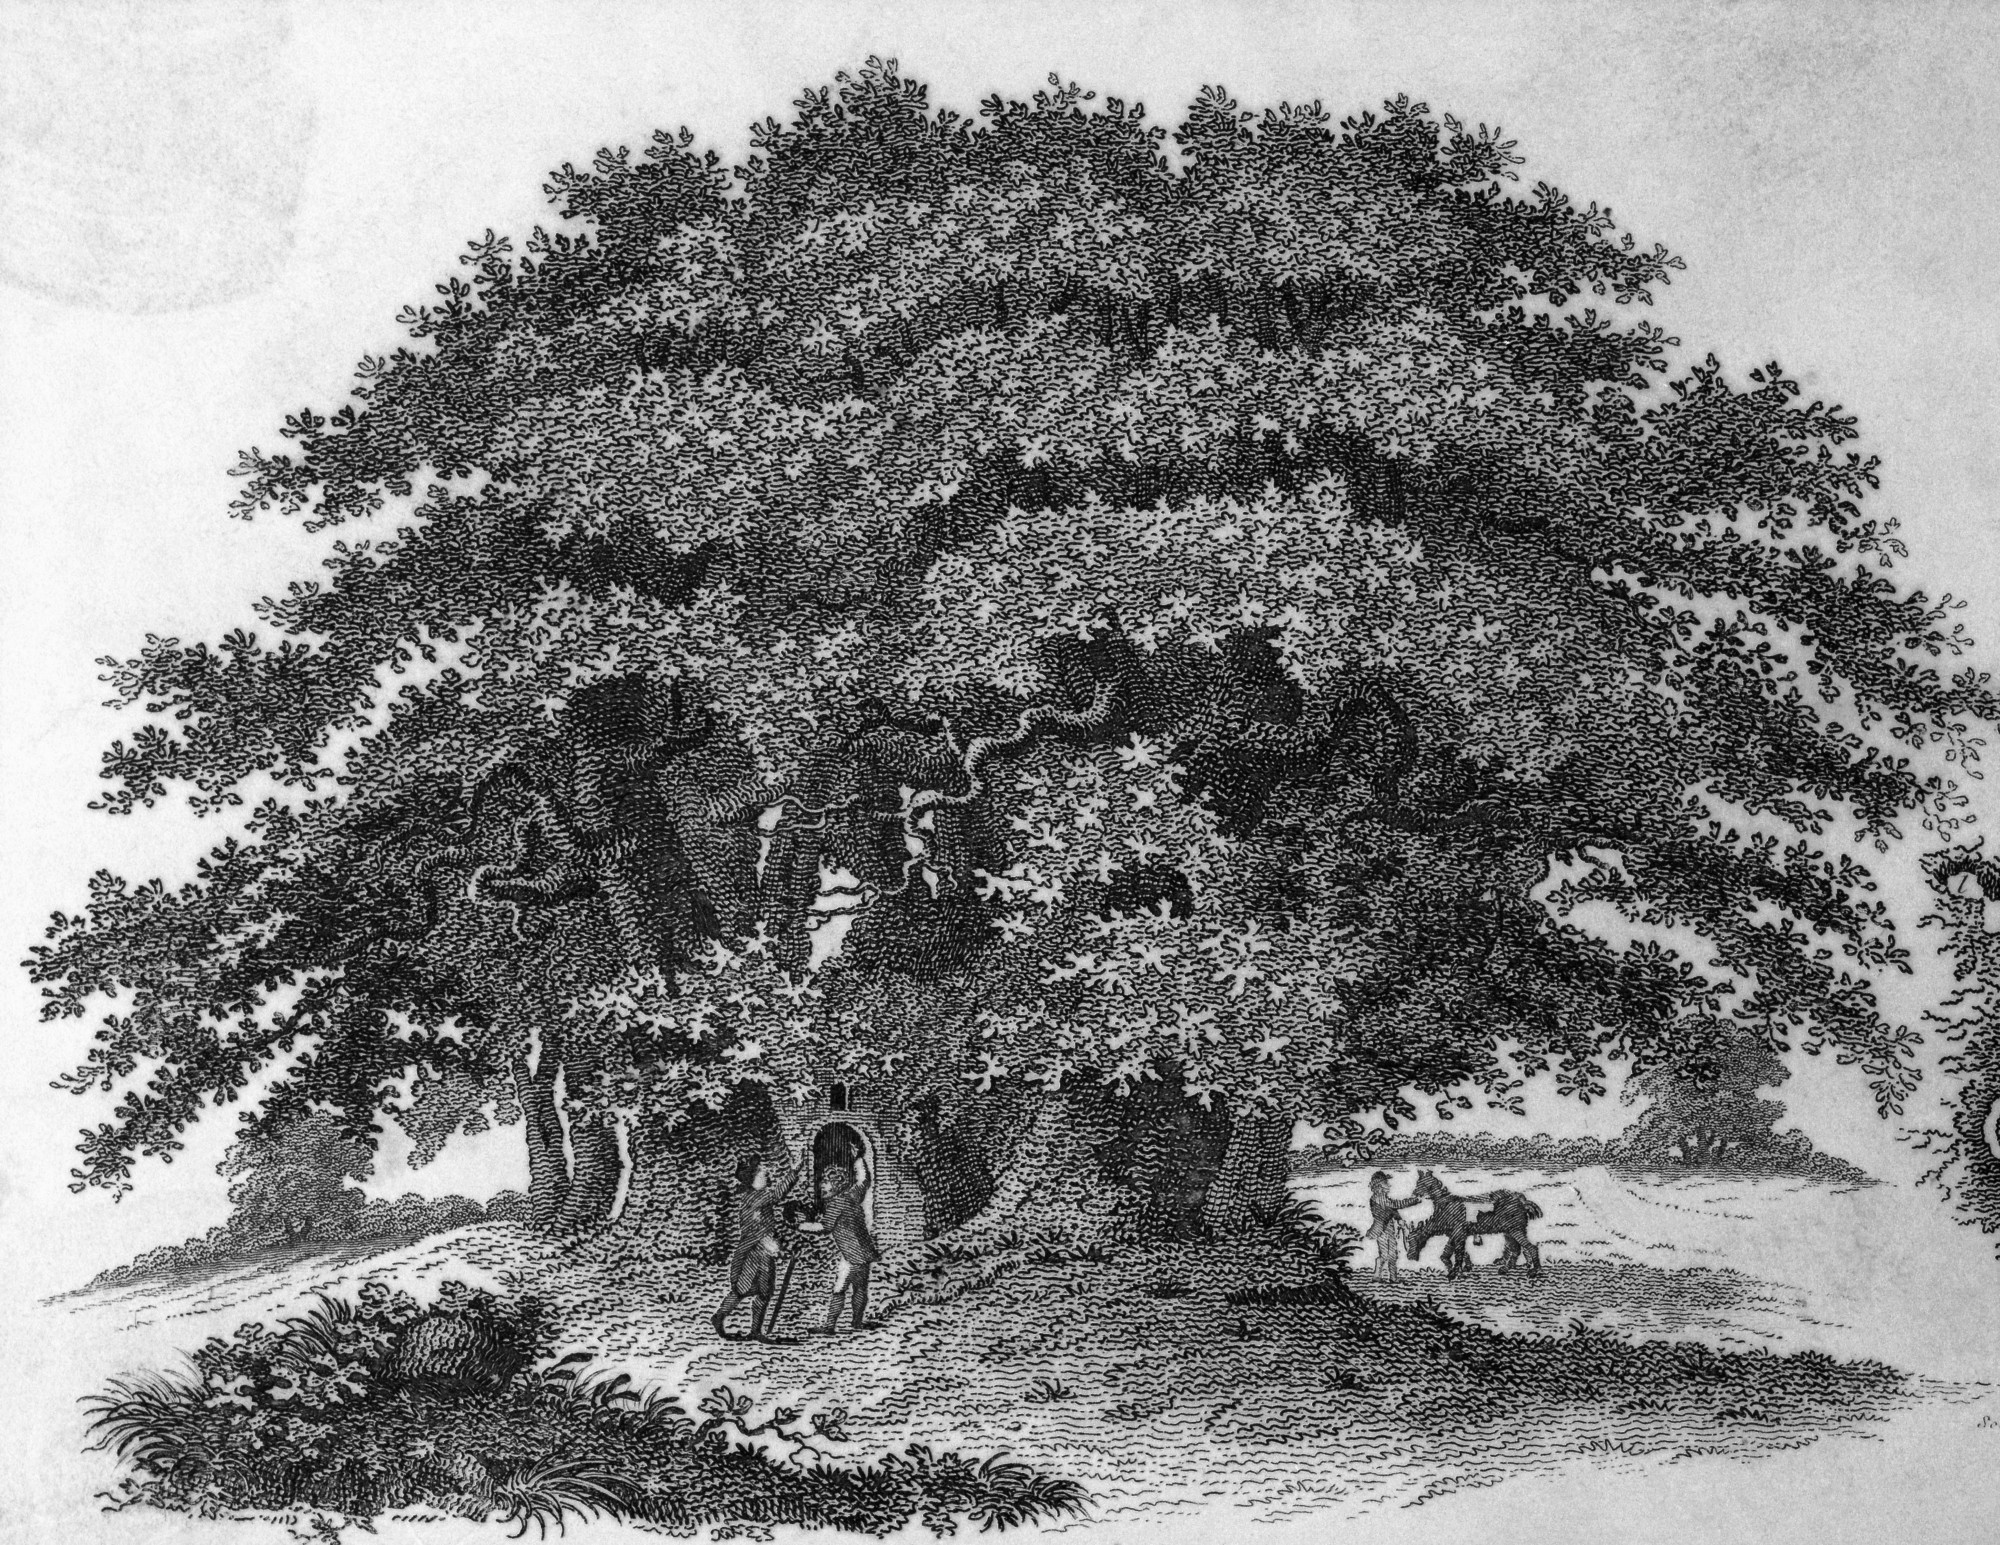 There used to be 4 billion American chestnut trees but they all